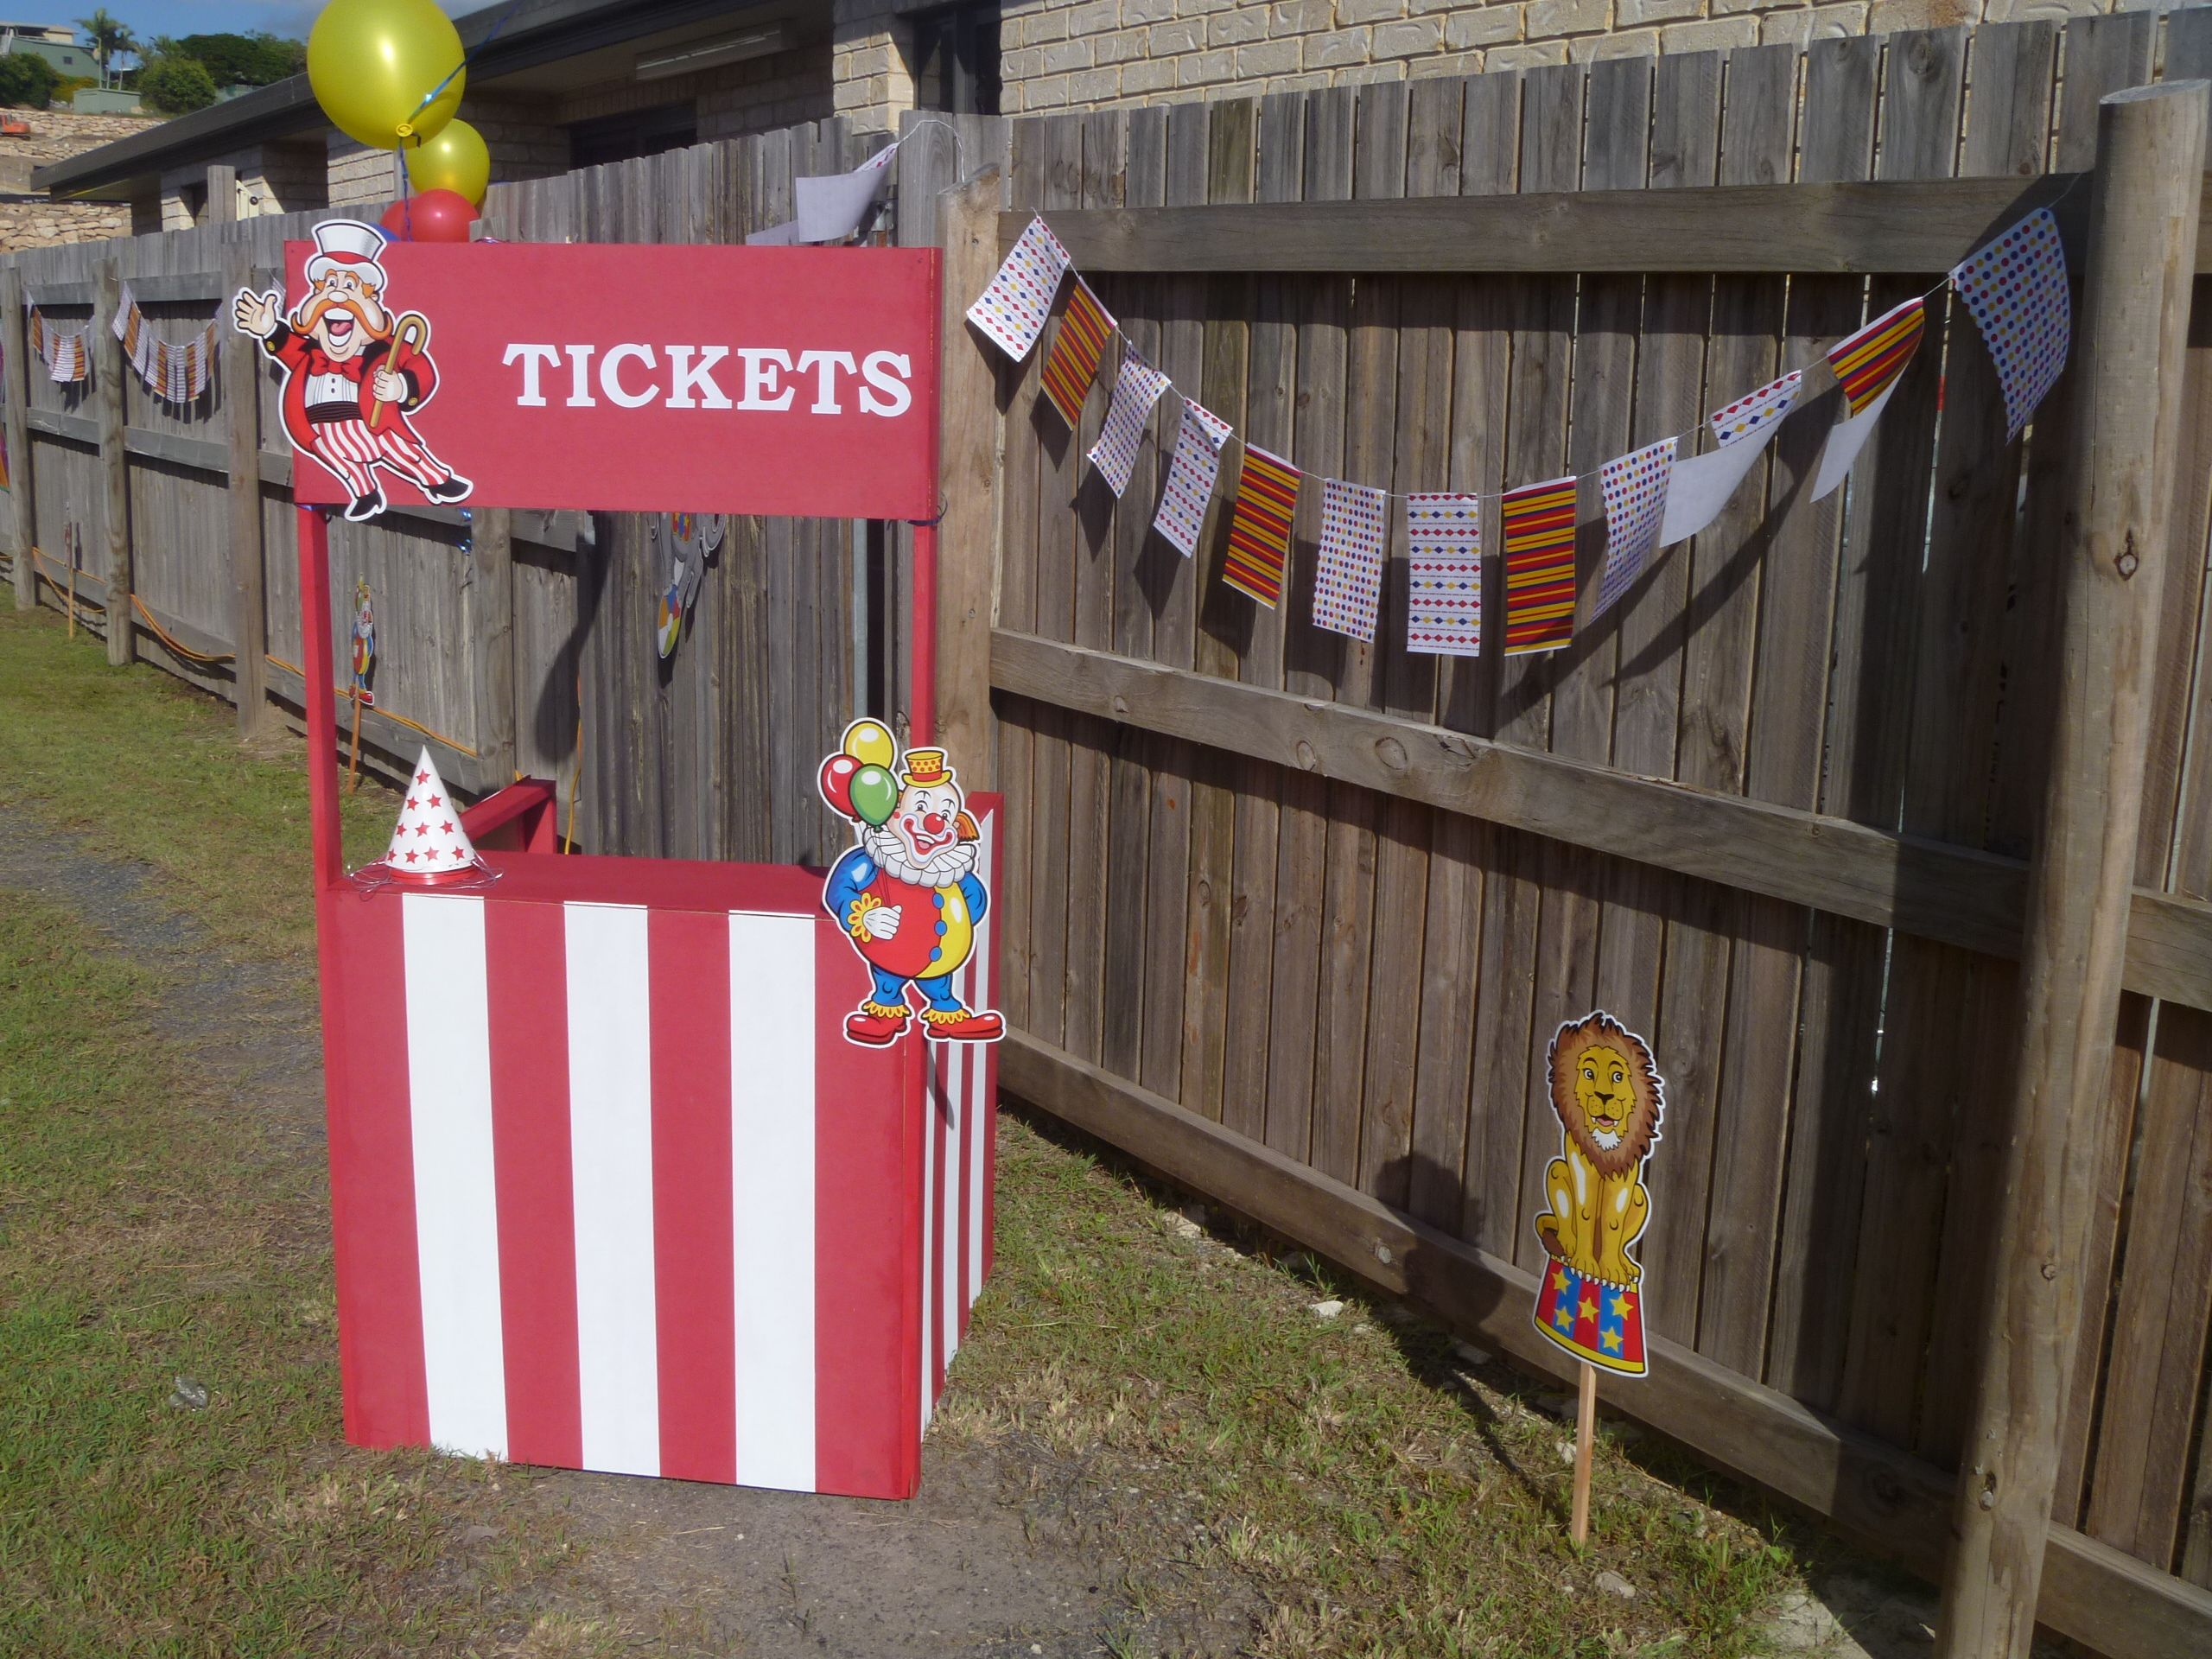 Our DIY ticket booth!